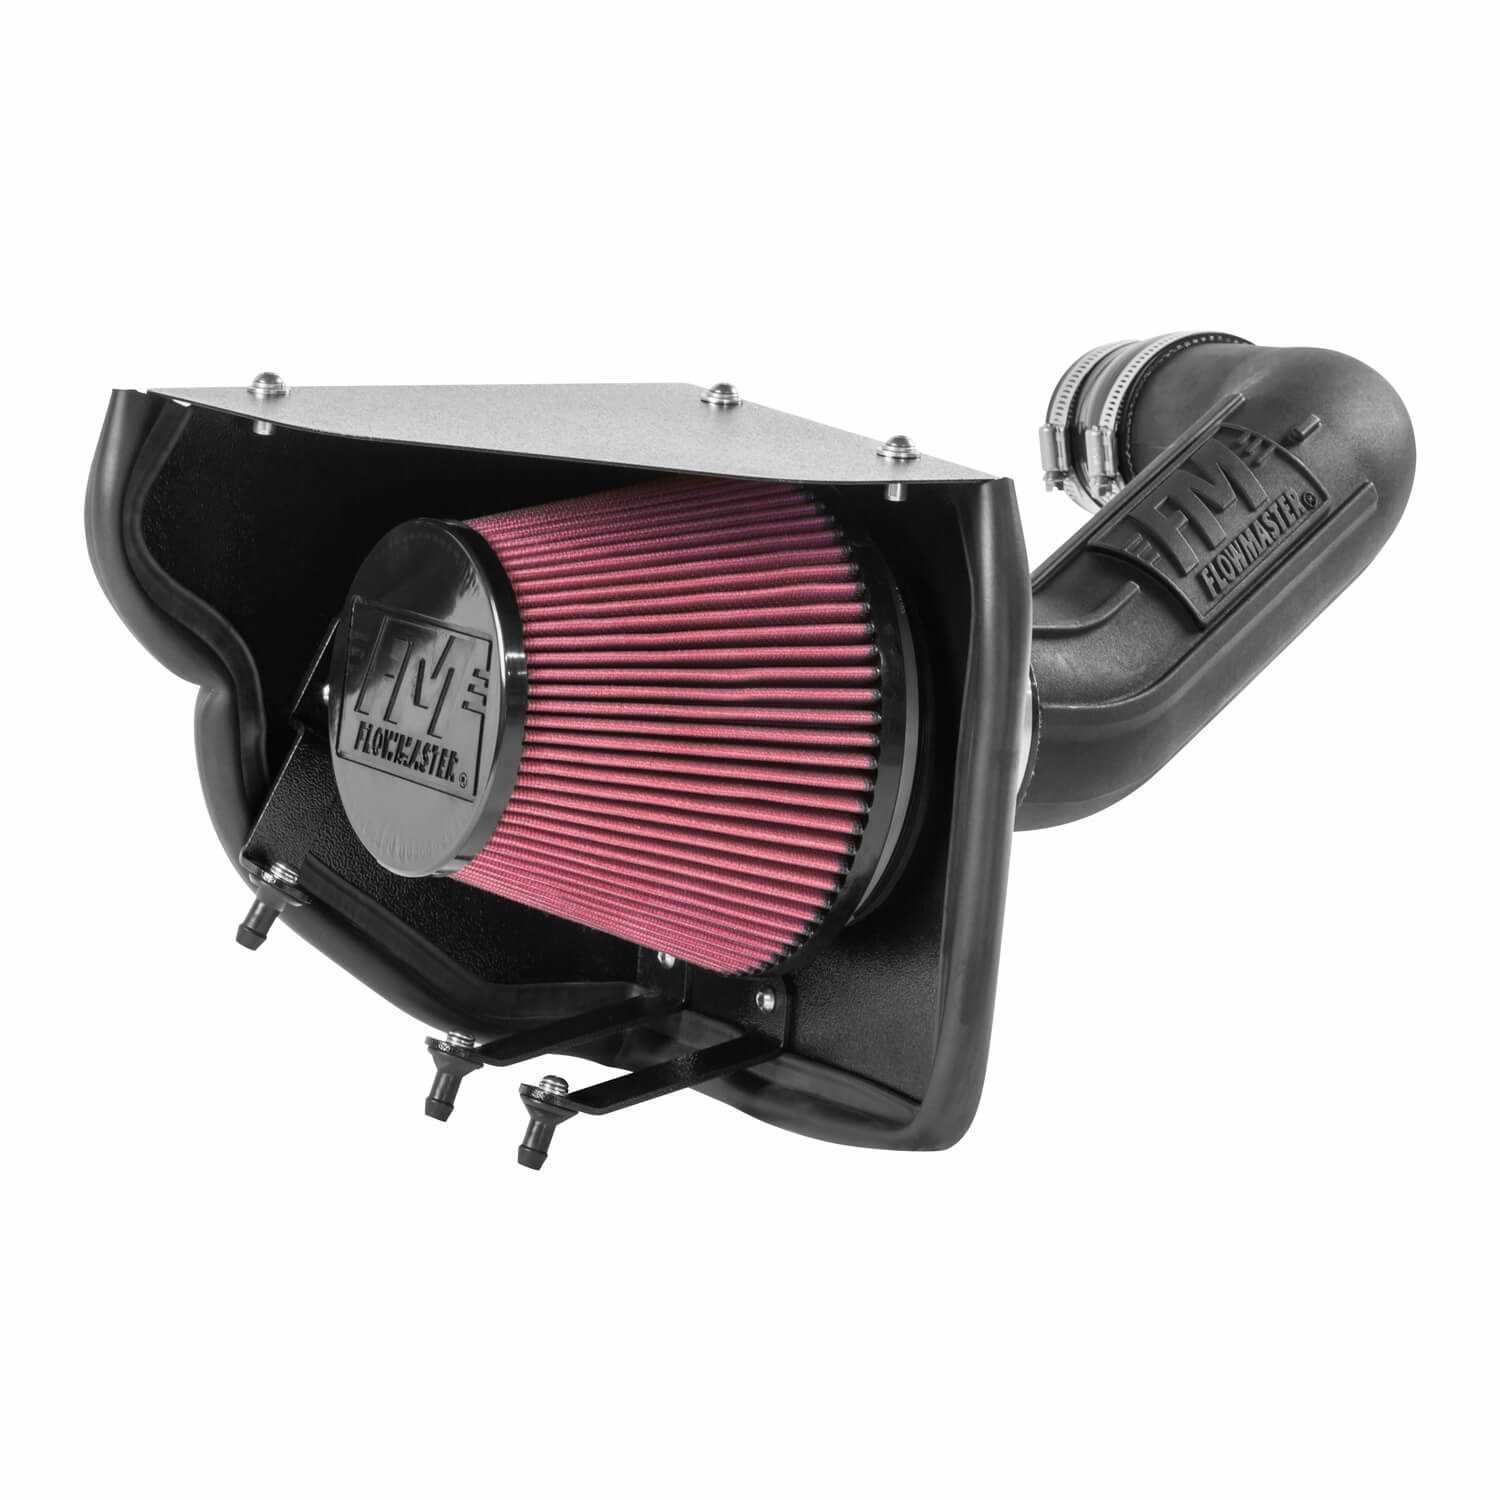 615142 Flowmaster Delta Force Cold Air Intake Kit